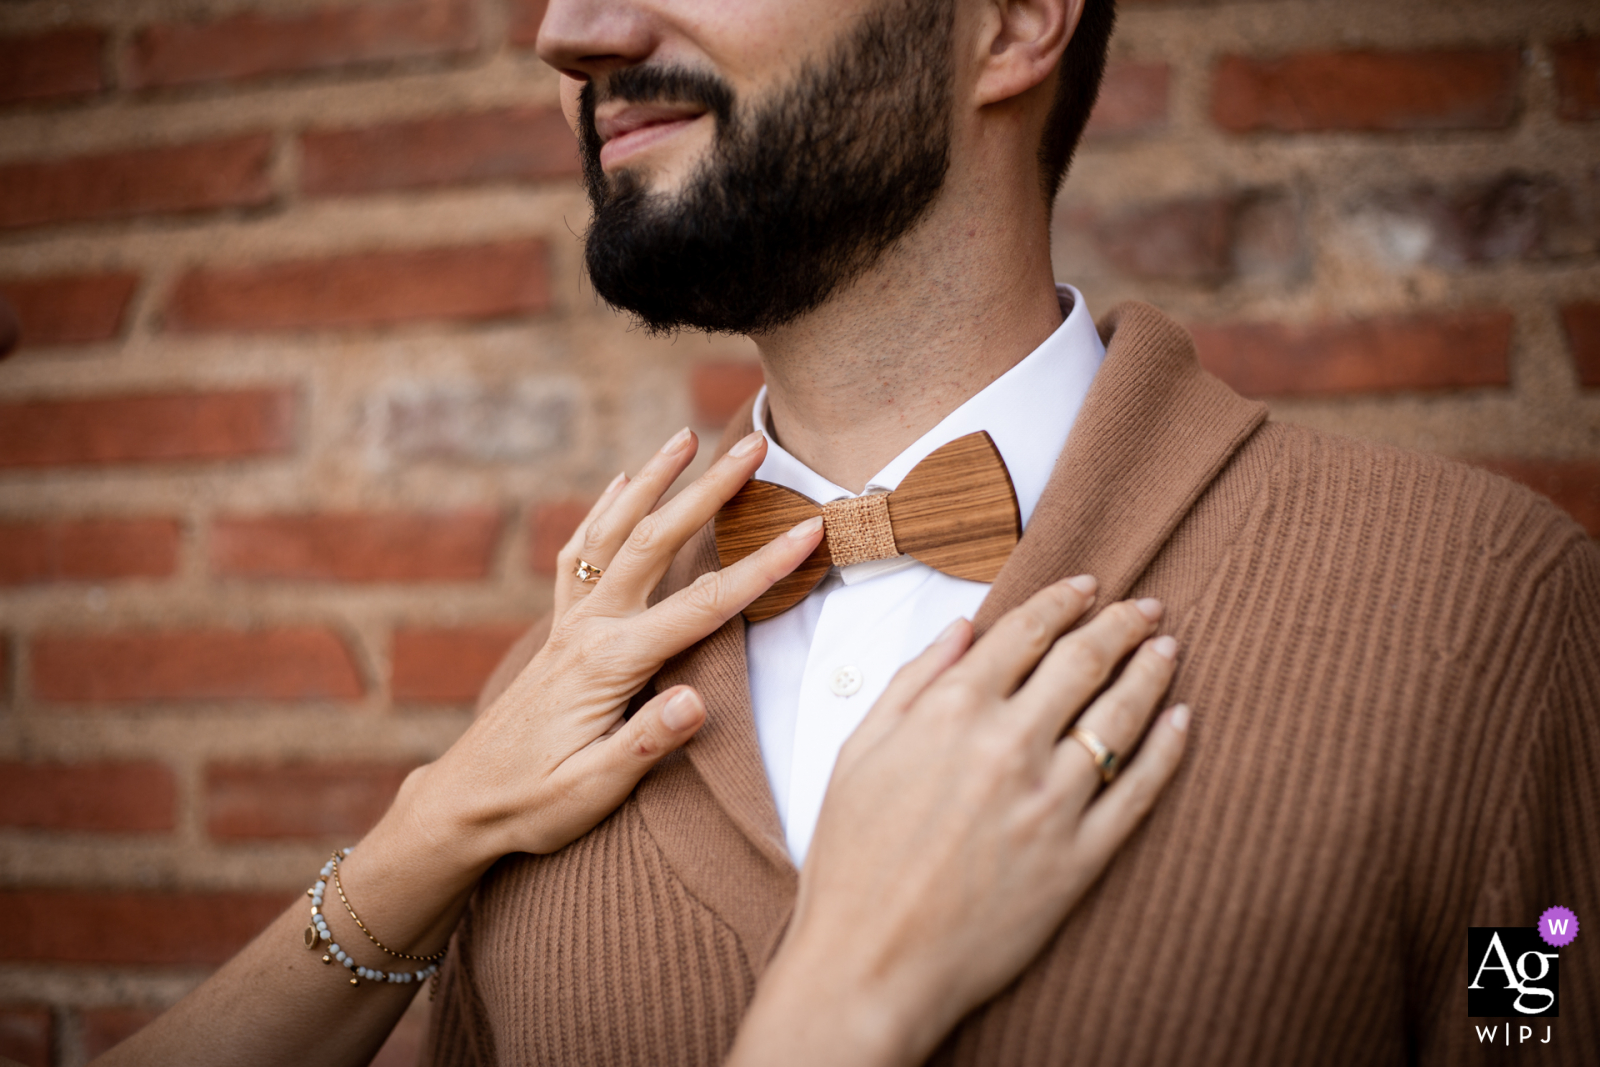 Albi street south of France creative wedding detail image of the grooms Wood bow tie against a warm brick wall and sweater